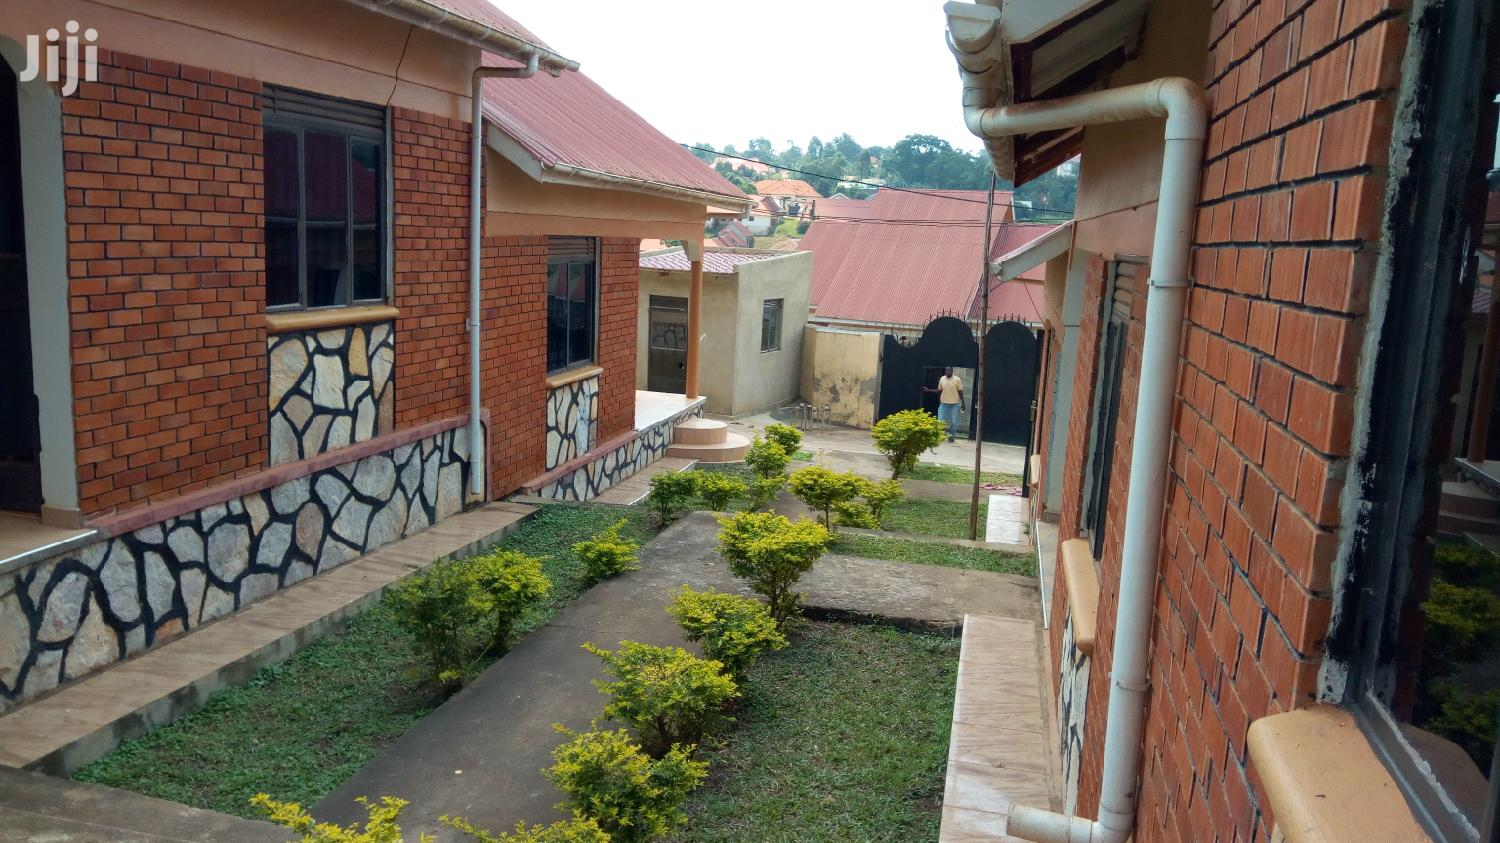 2 Bedroom House In Seeta For Rent | Houses & Apartments For Rent for sale in Mukono, Central Region, Uganda